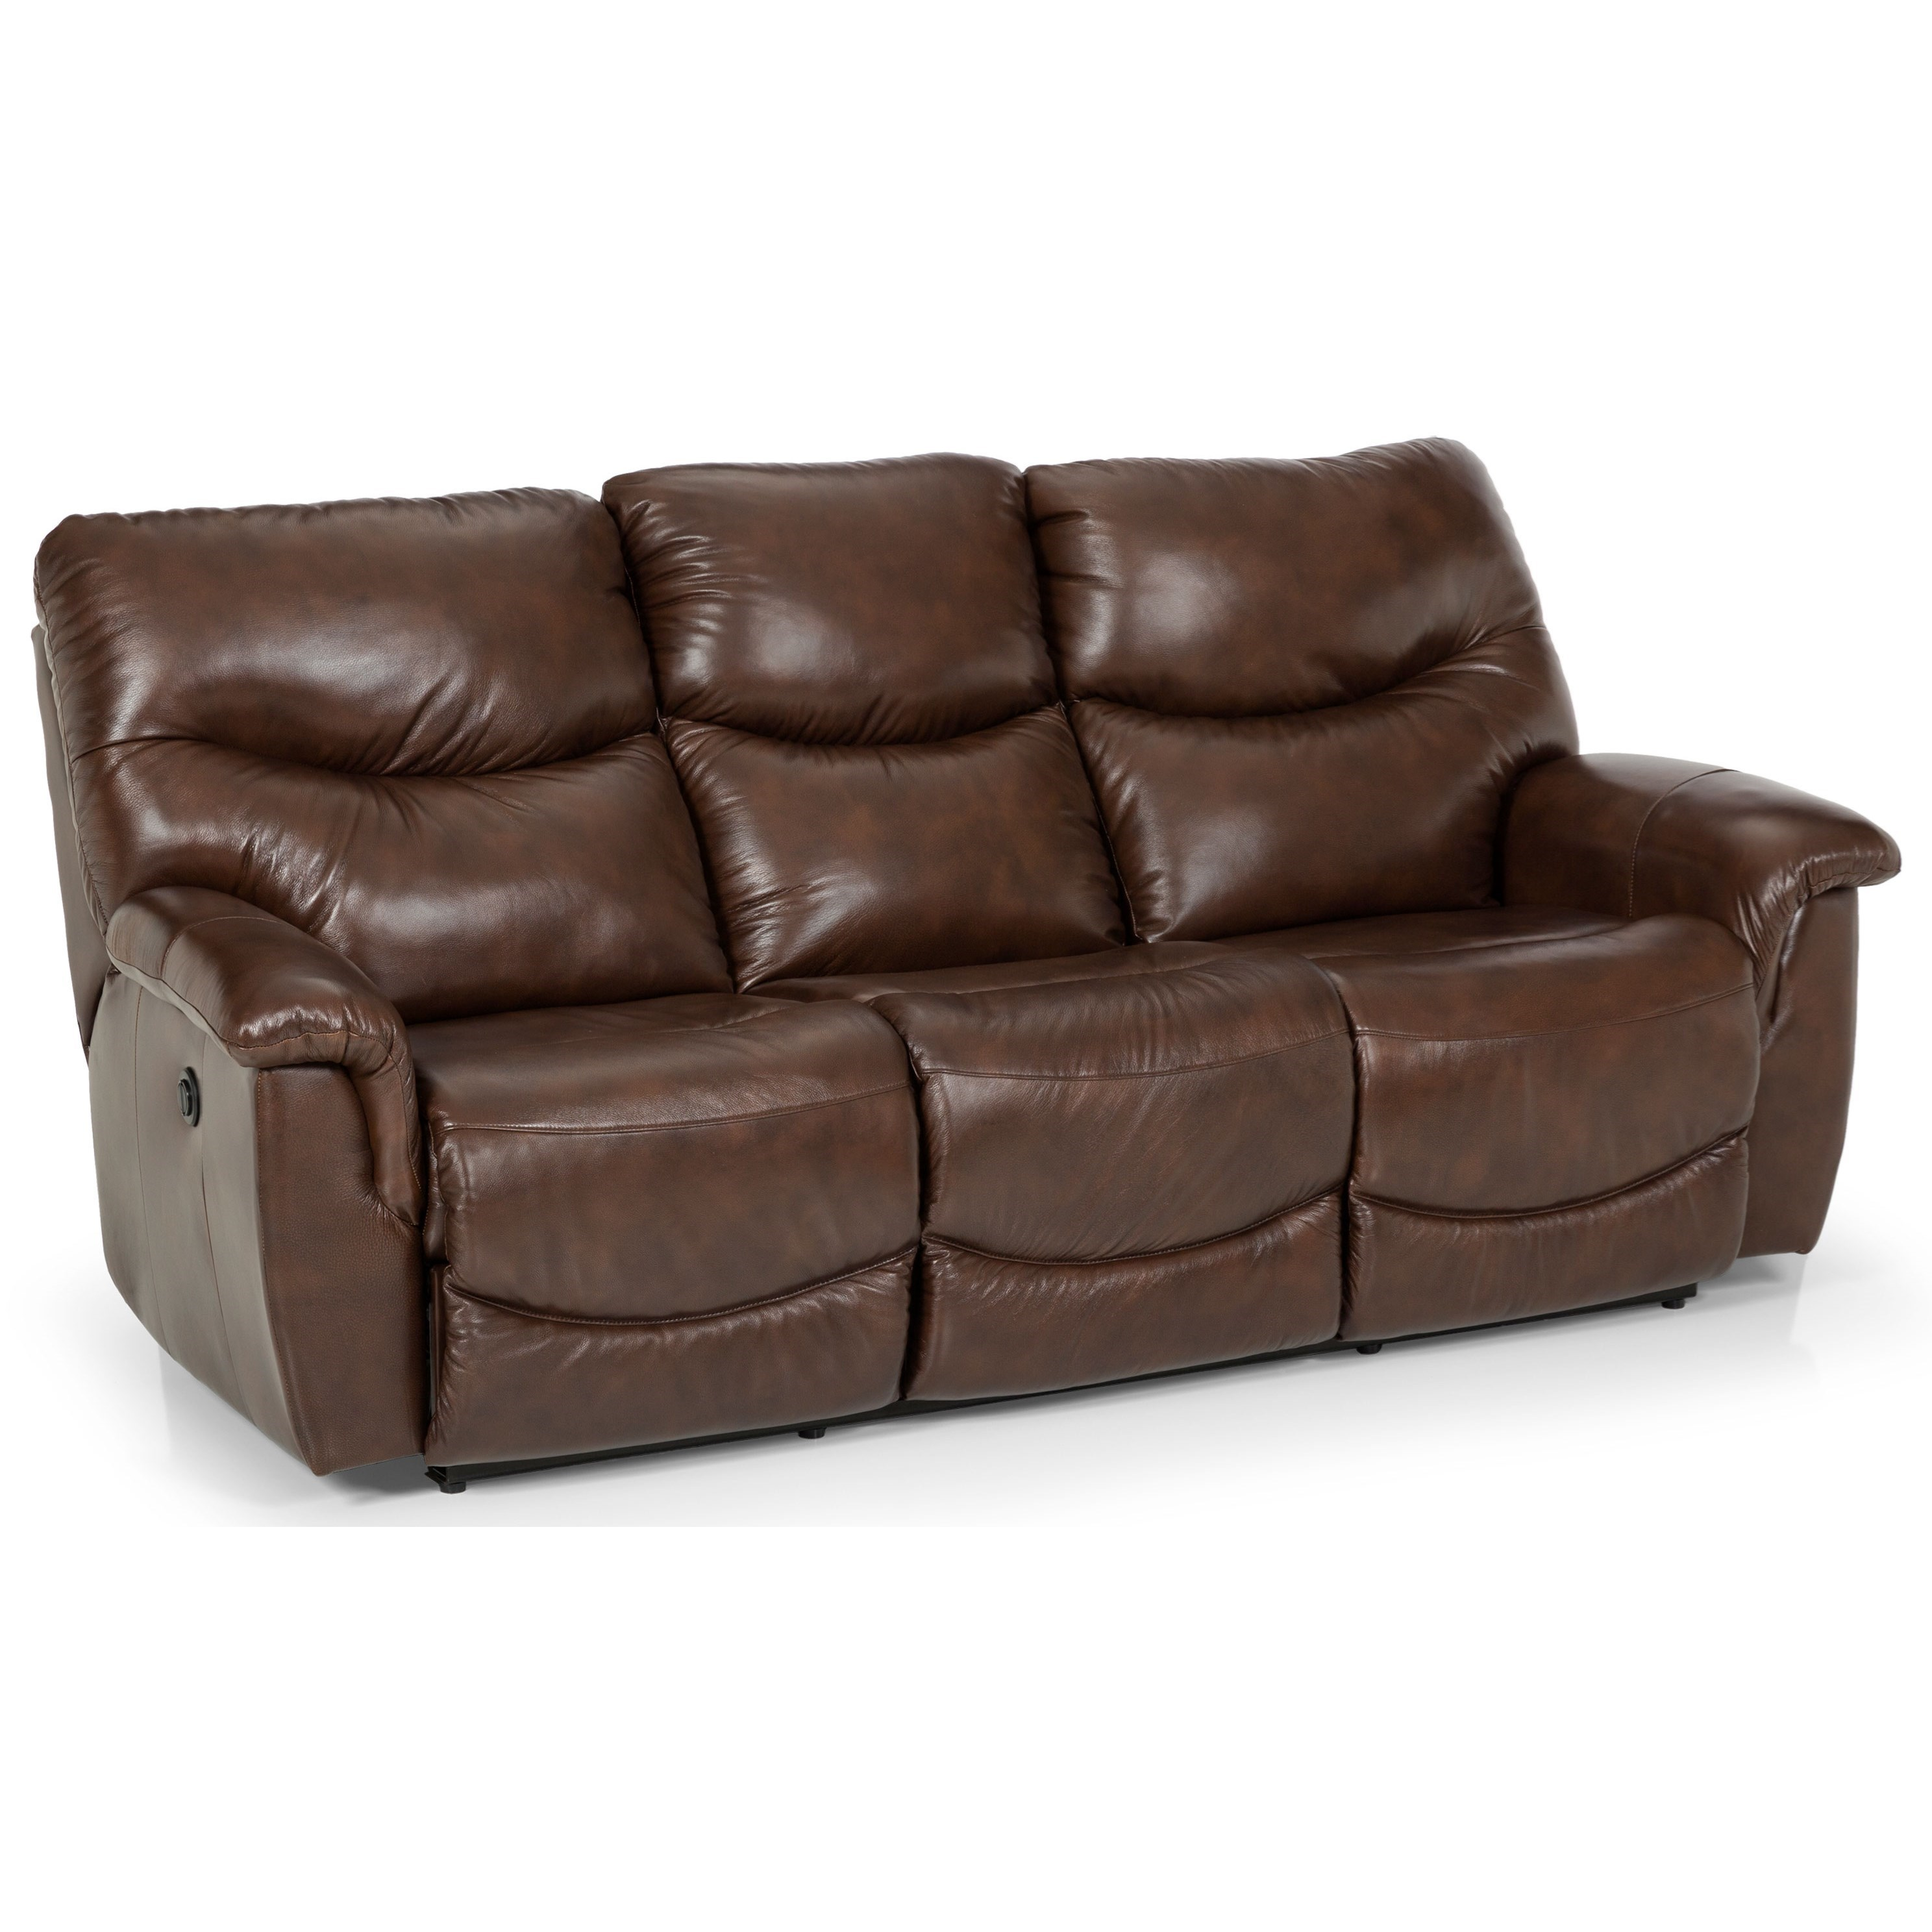 936 Power Reclining Sofa by Stanton at Wilson's Furniture